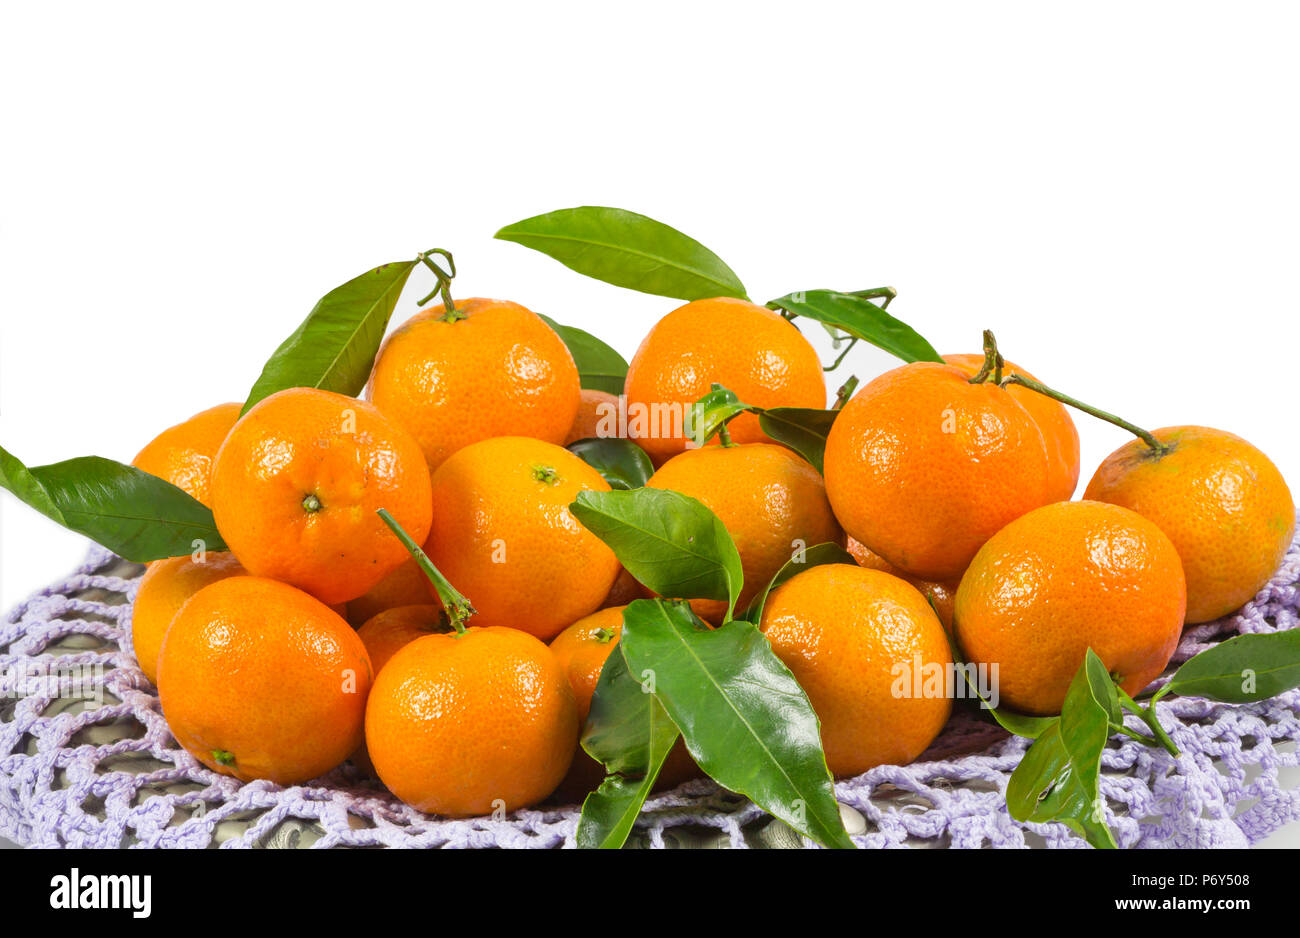 Bunch of fresh tangerines oranges in white background. - Stock Image